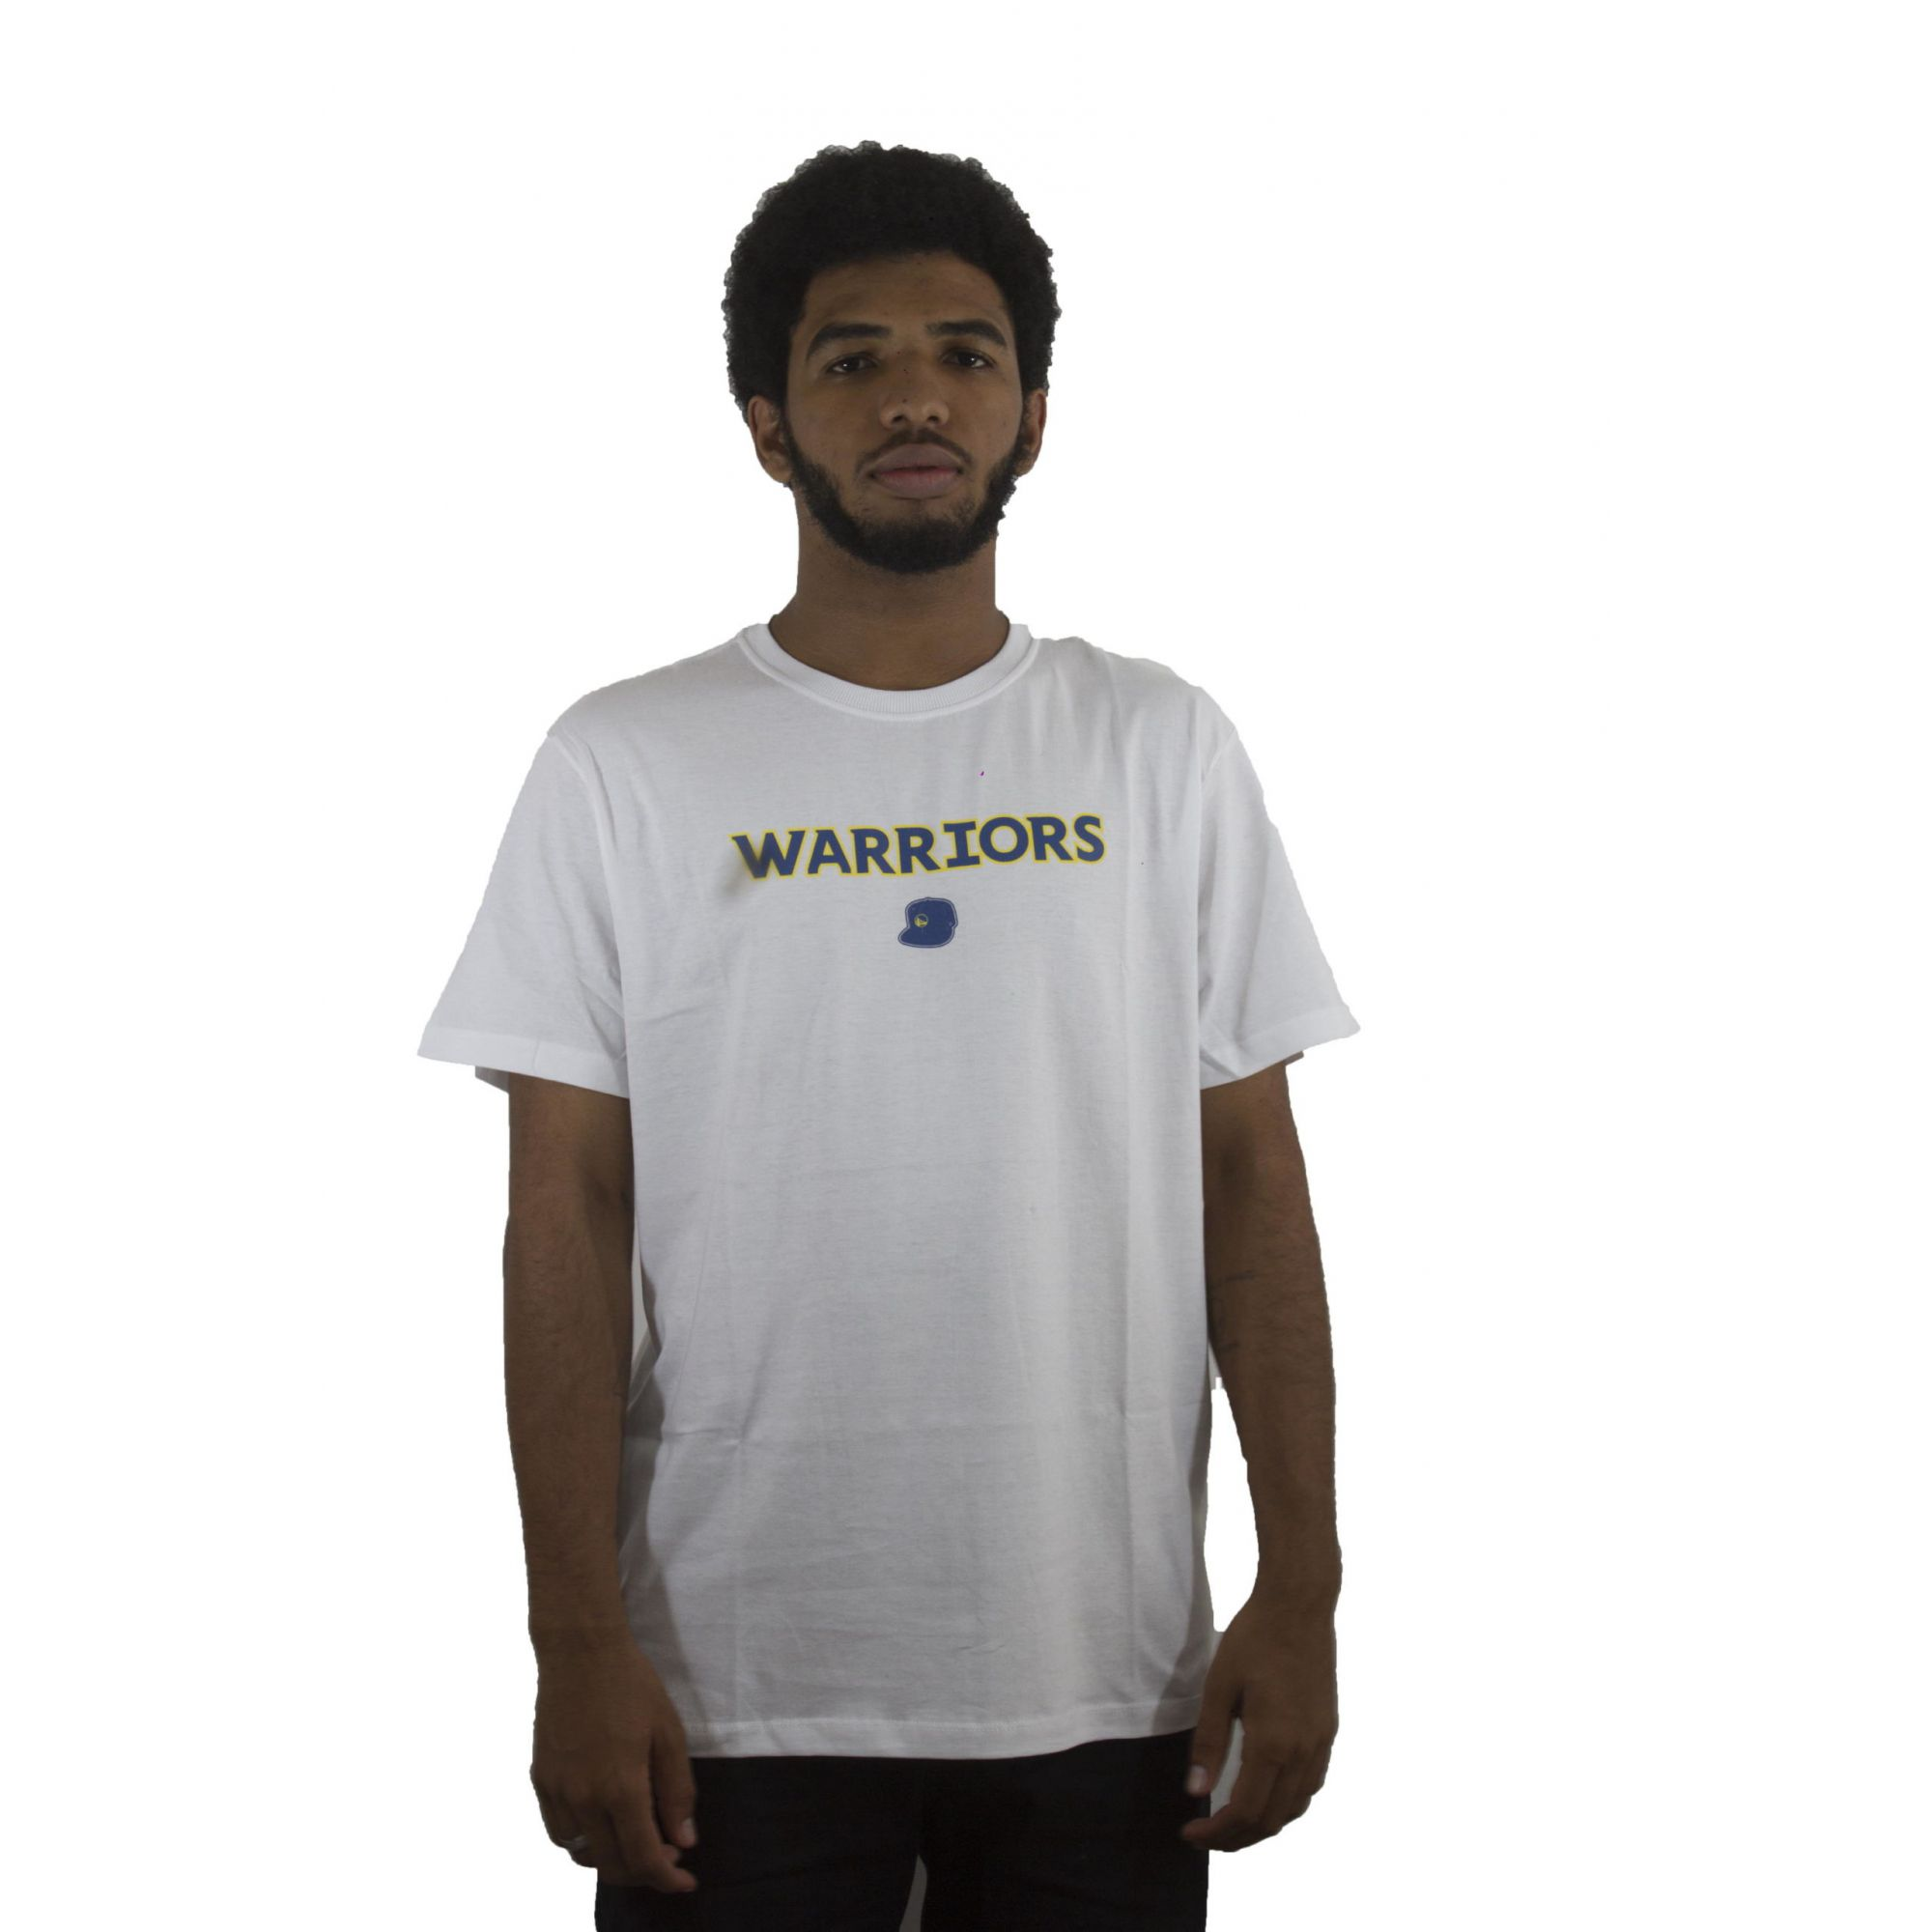 Camiseta New Era Warriors Branca